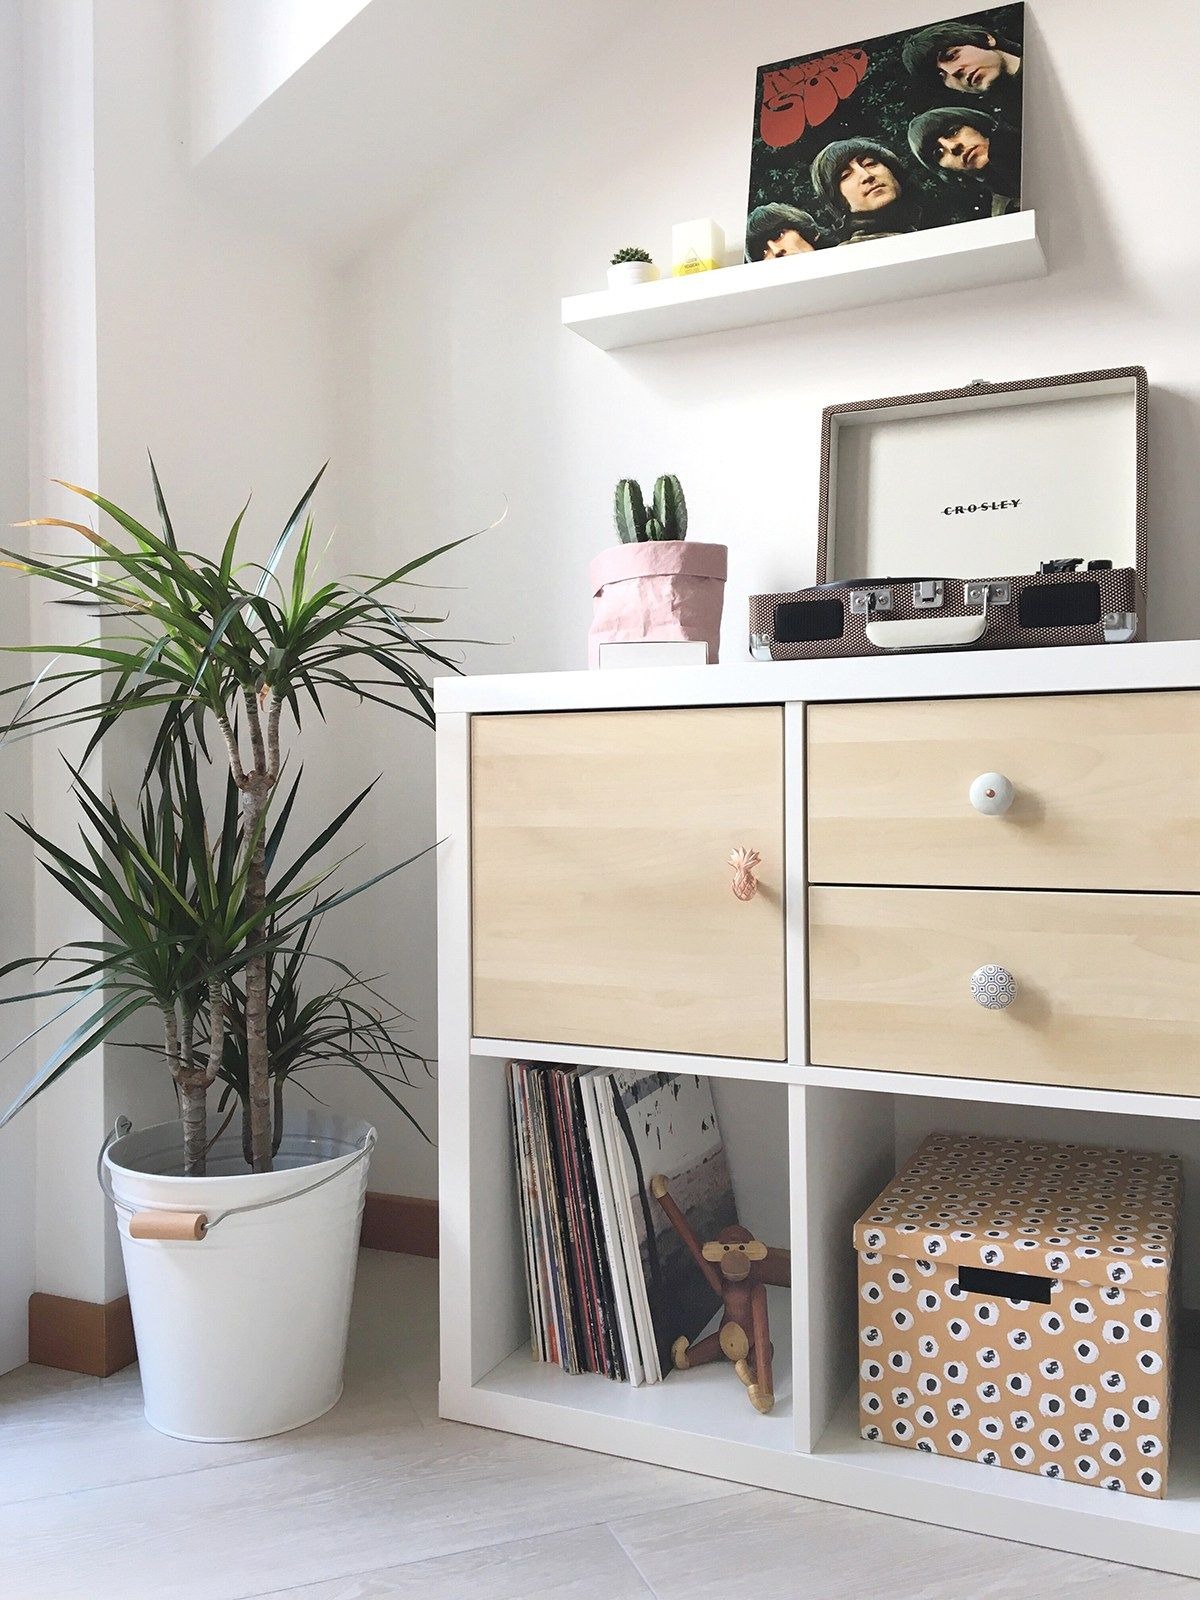 Diy how i customized my ikea kallax shelving unit with doors knobs blogger inspiration - Kallax wohnzimmer ...